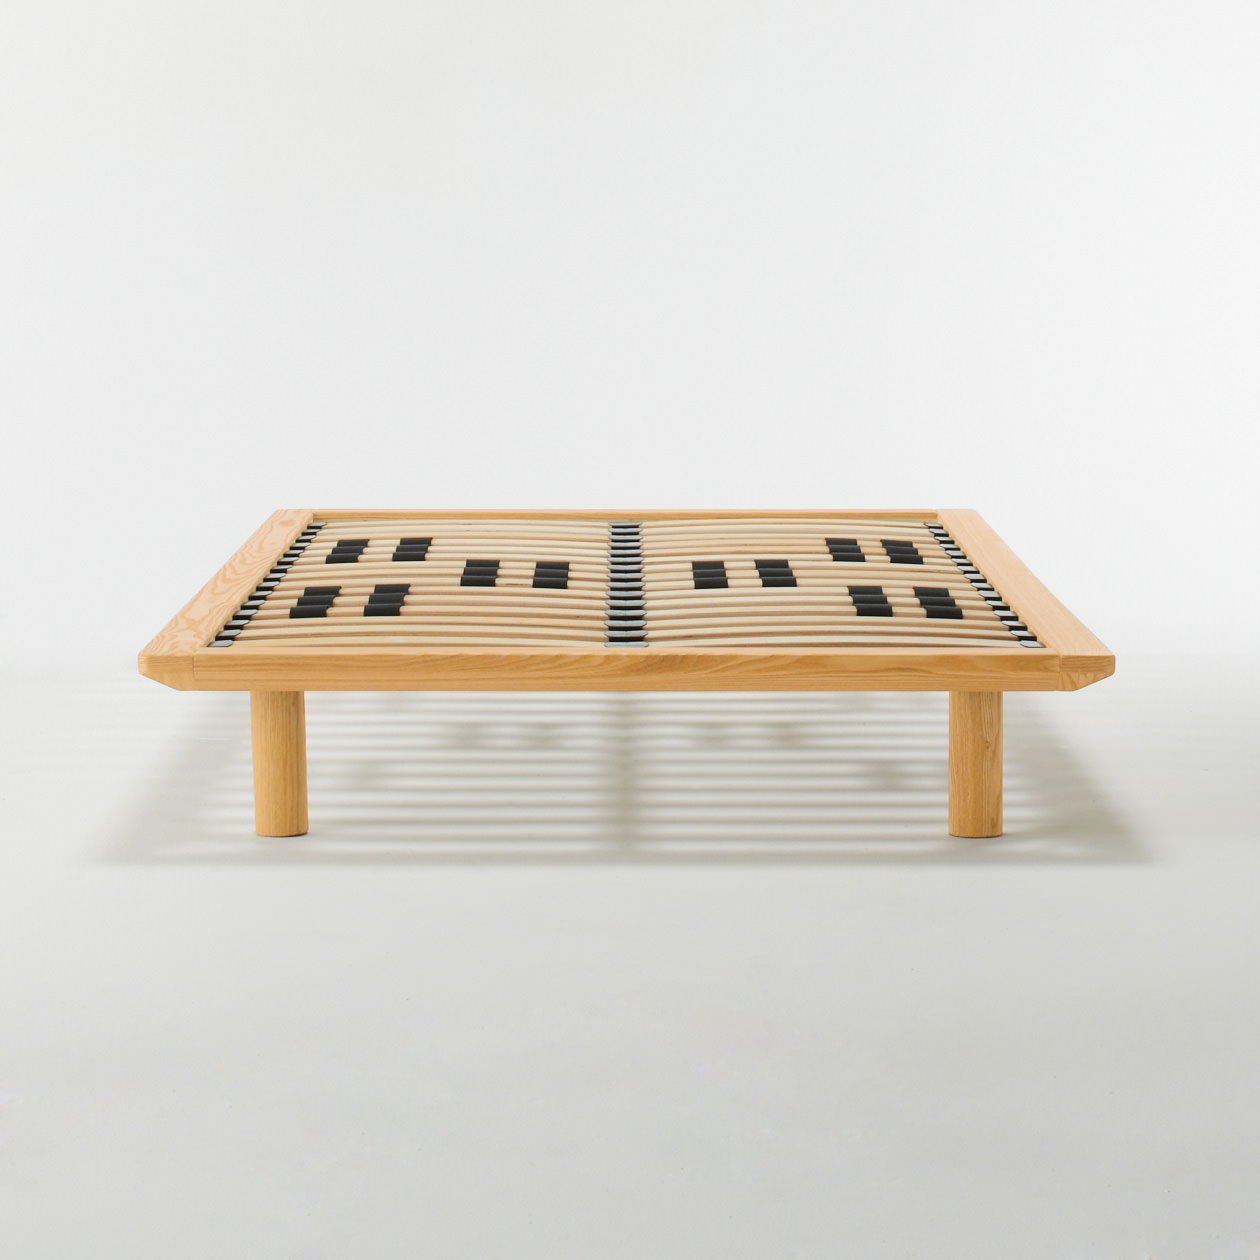 oak wood bed frame nat double muji